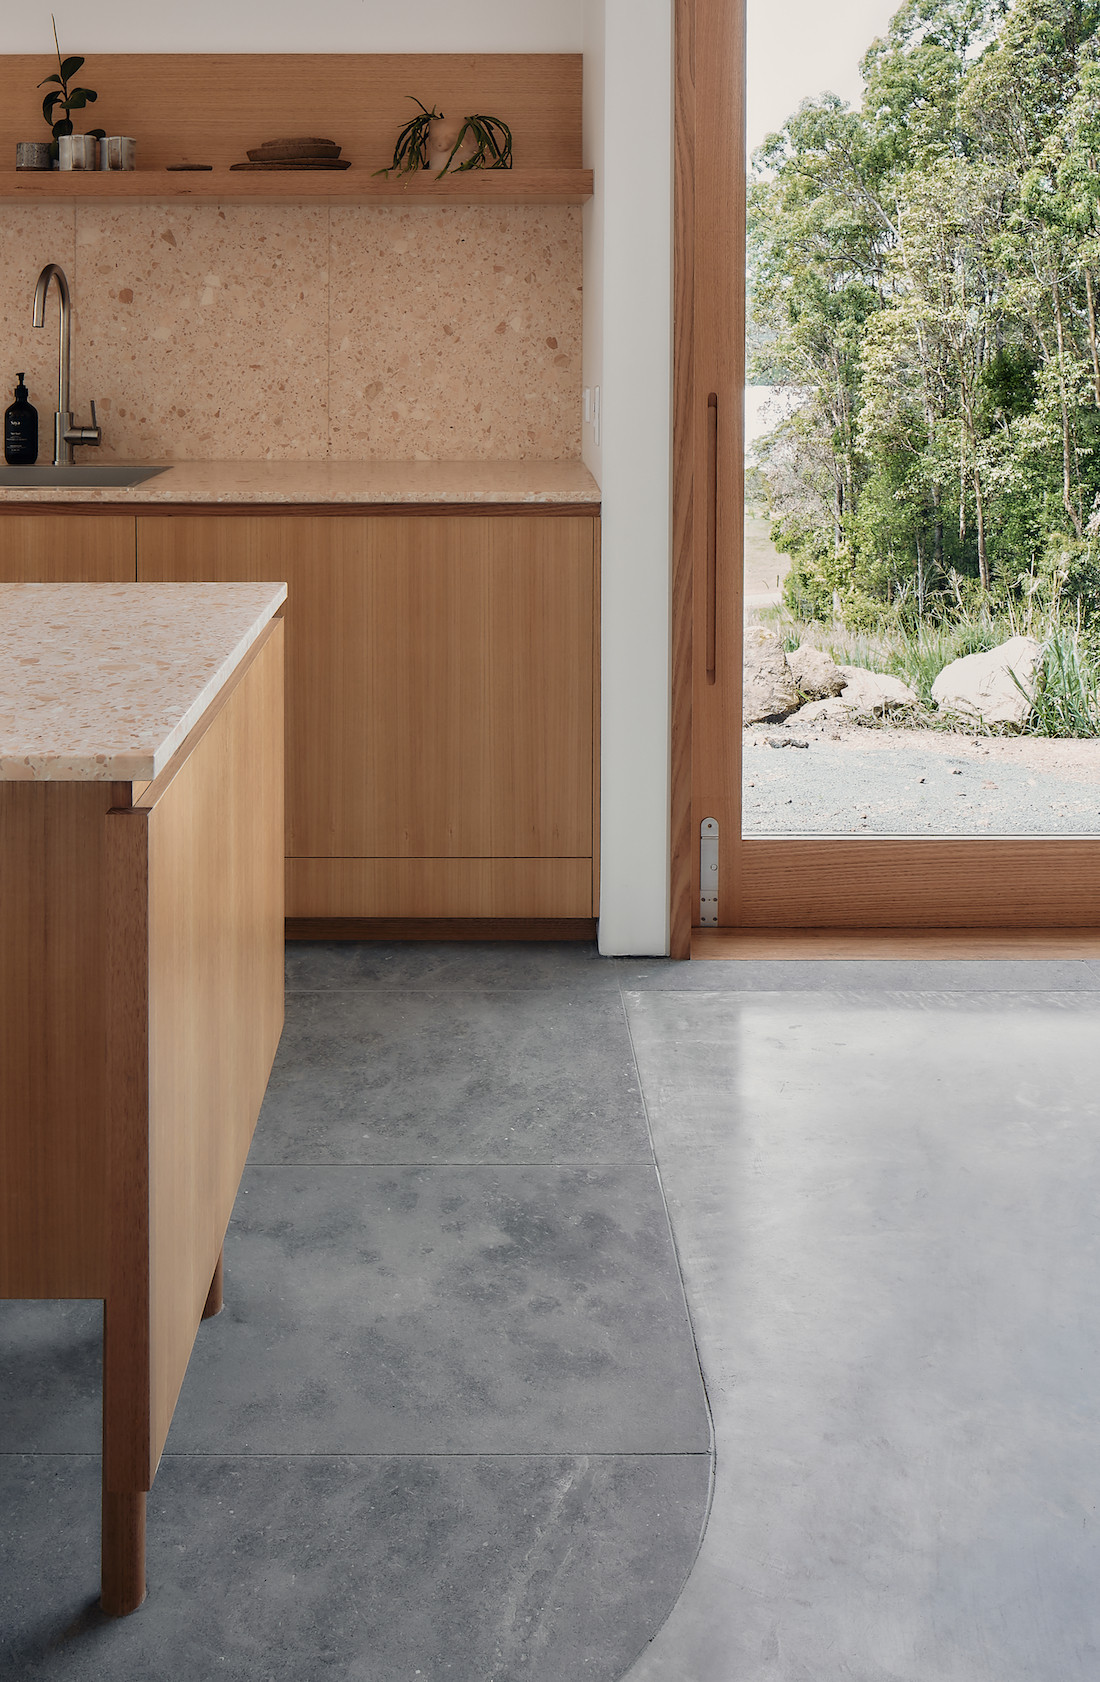 Limestone and concrete floors meet at the edge of the kitchen in A-CH's Yandina Sunrise Sunshine Coast hinterland home.